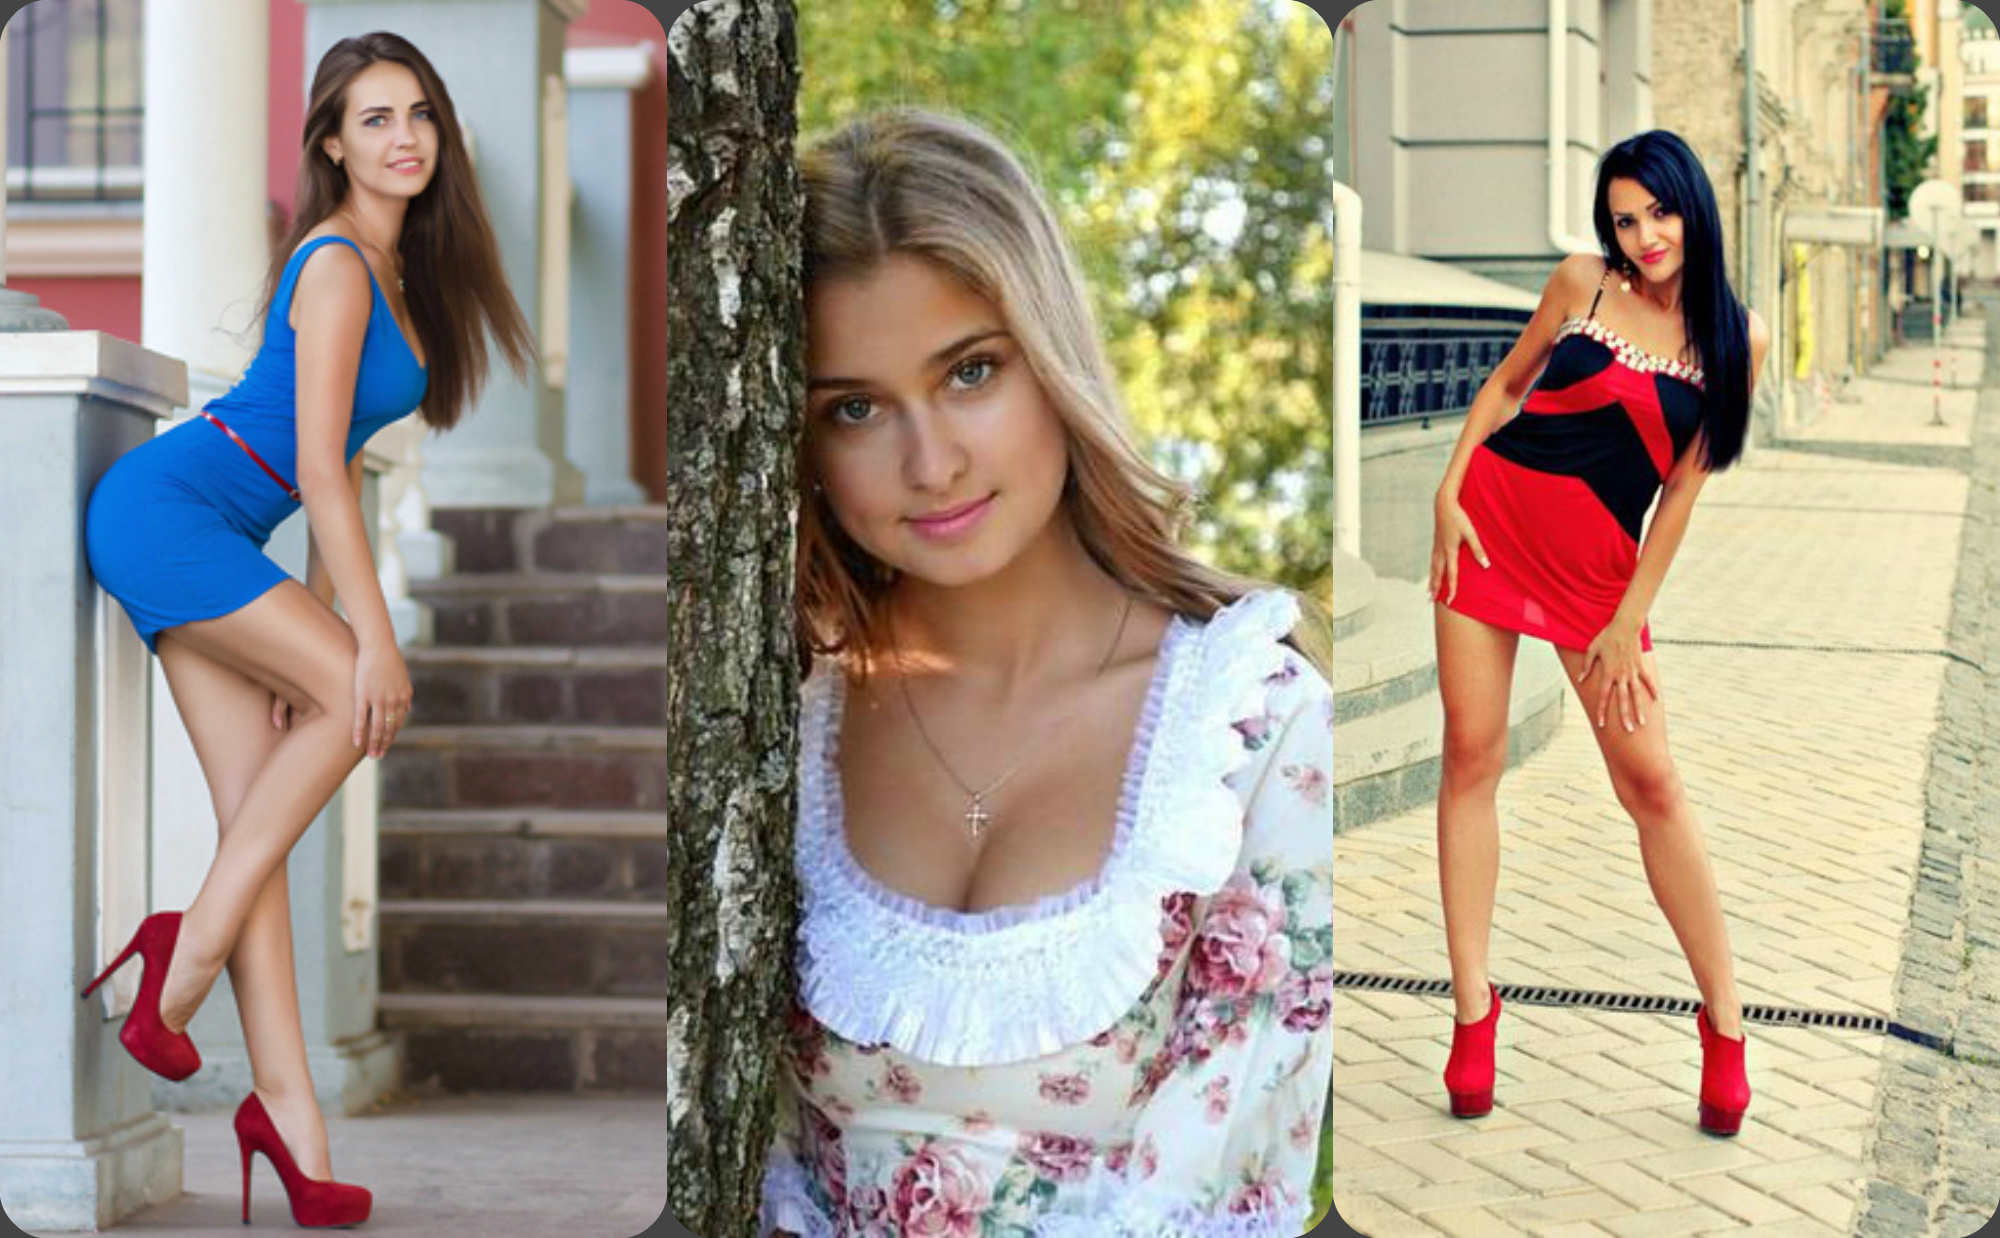 Ukrainian women: Who are they? | AnnaUkolova